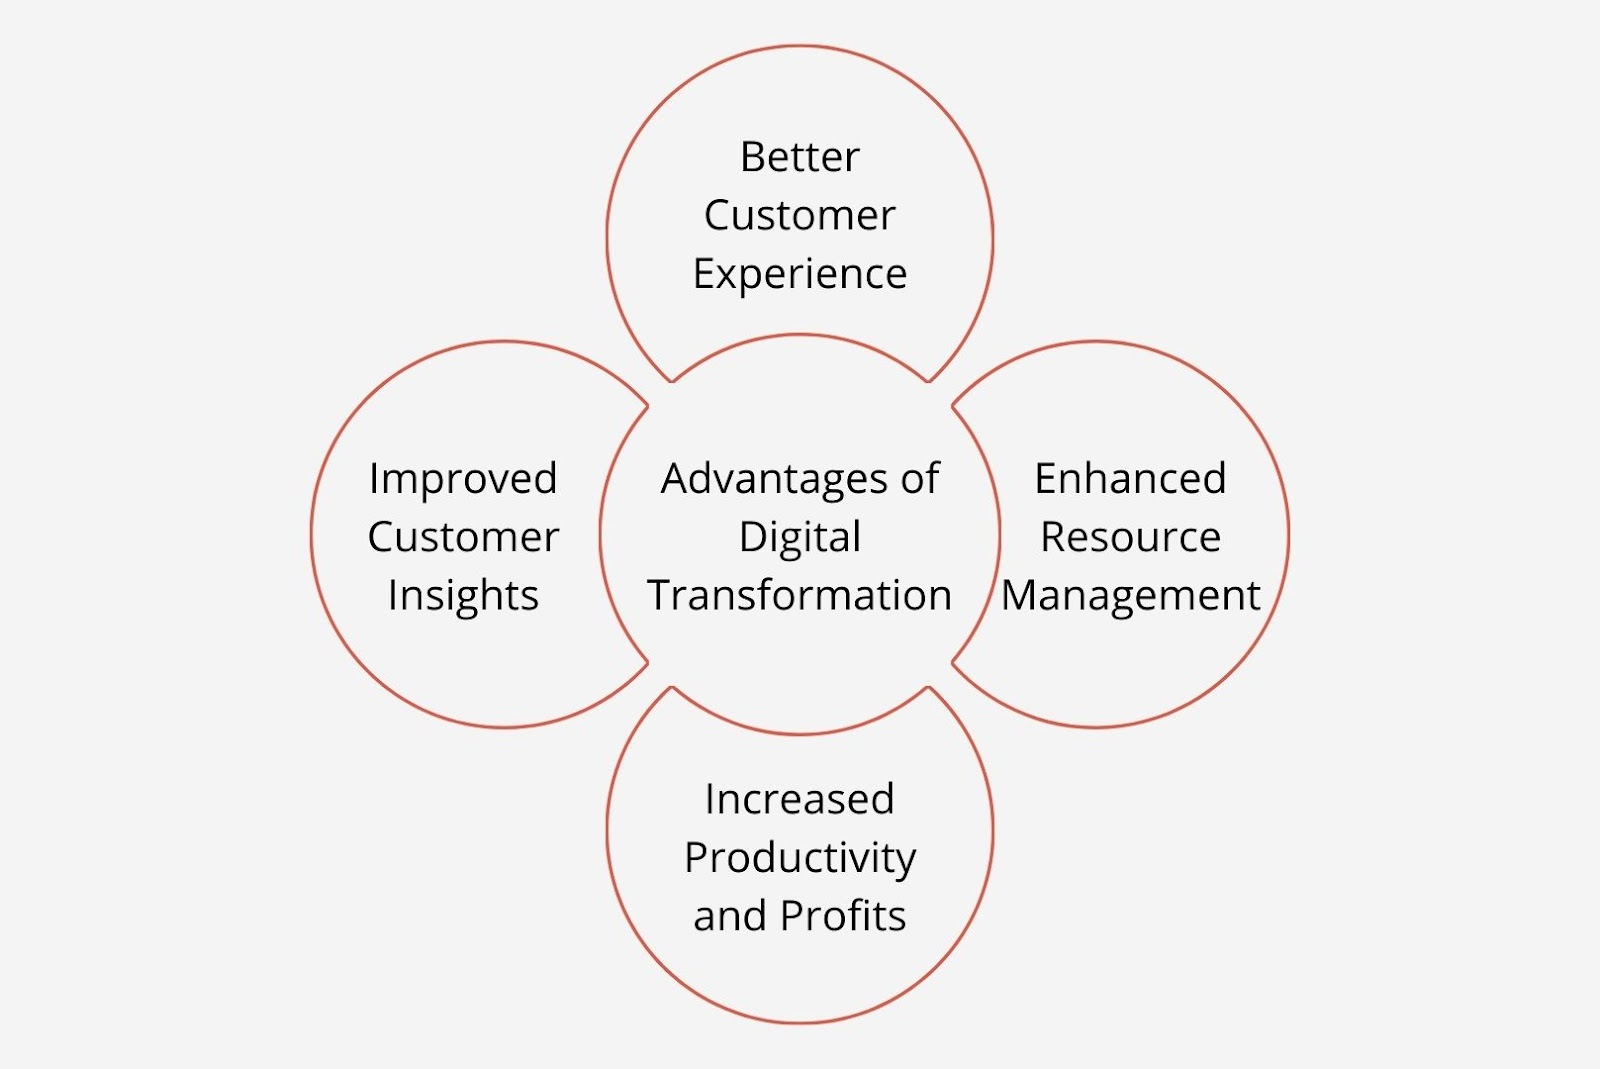 Advantages of Digital transformation